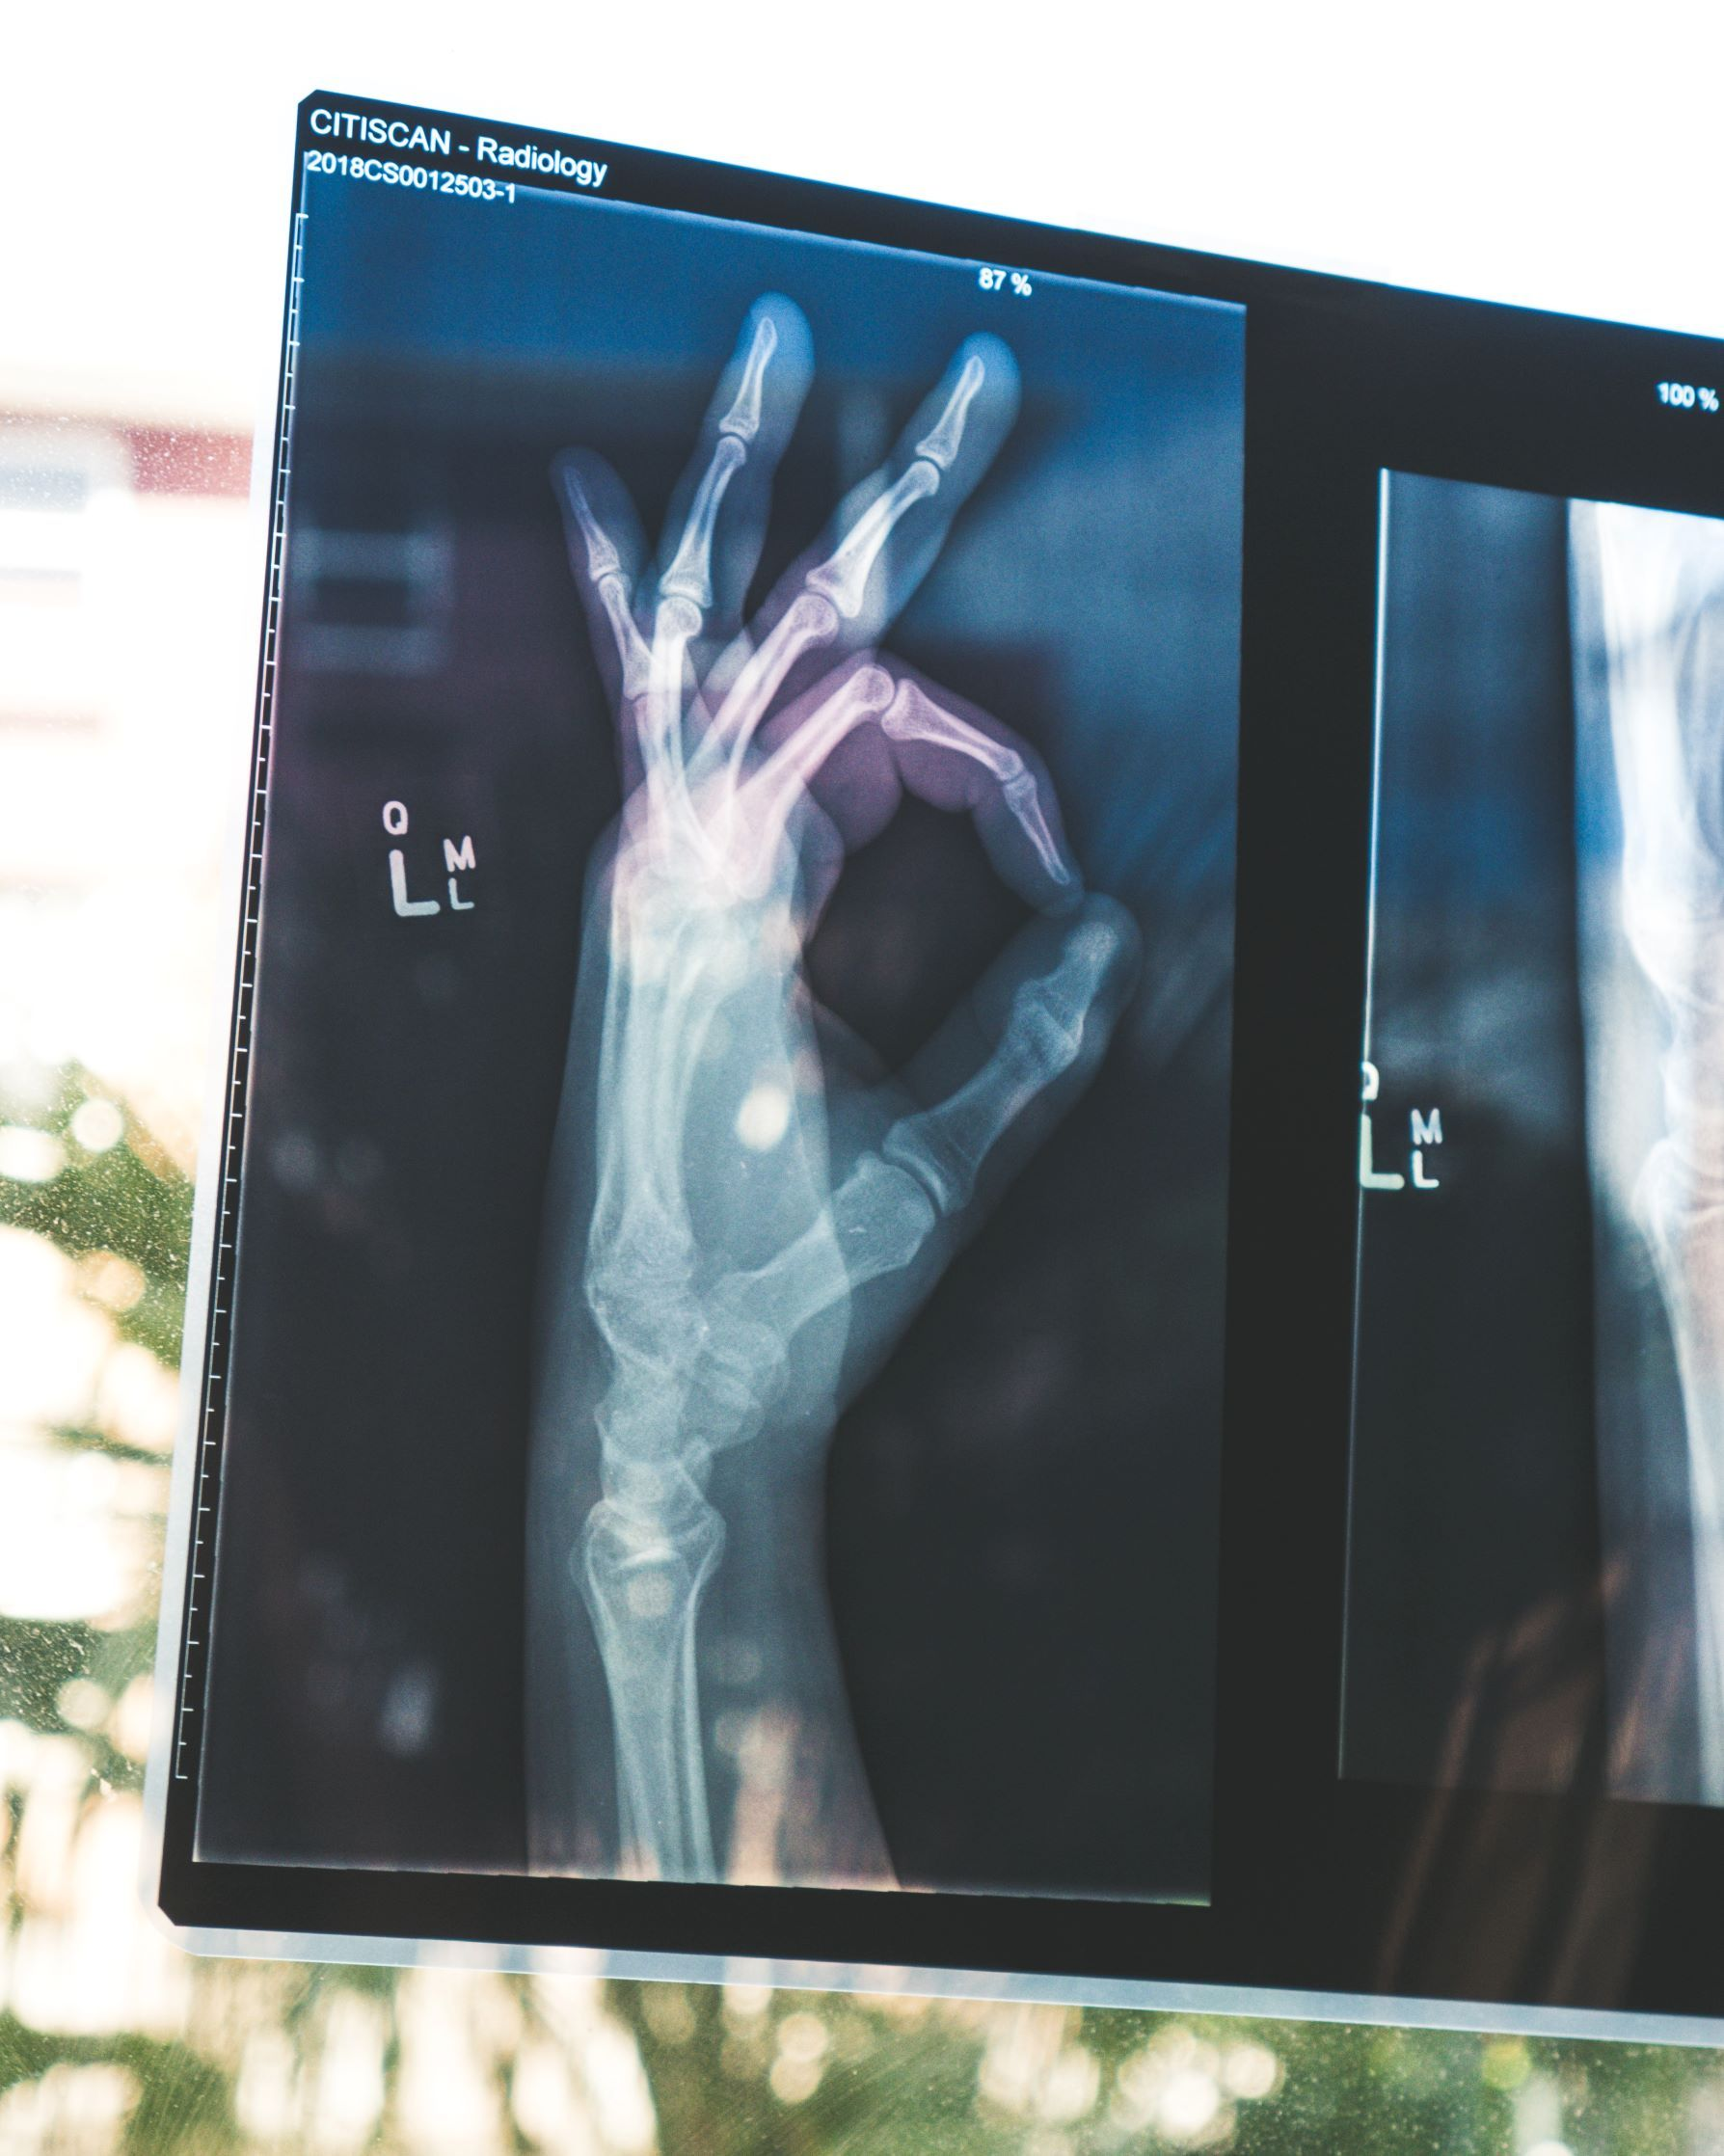 Photo of an X ray of a hand making an ok symbol